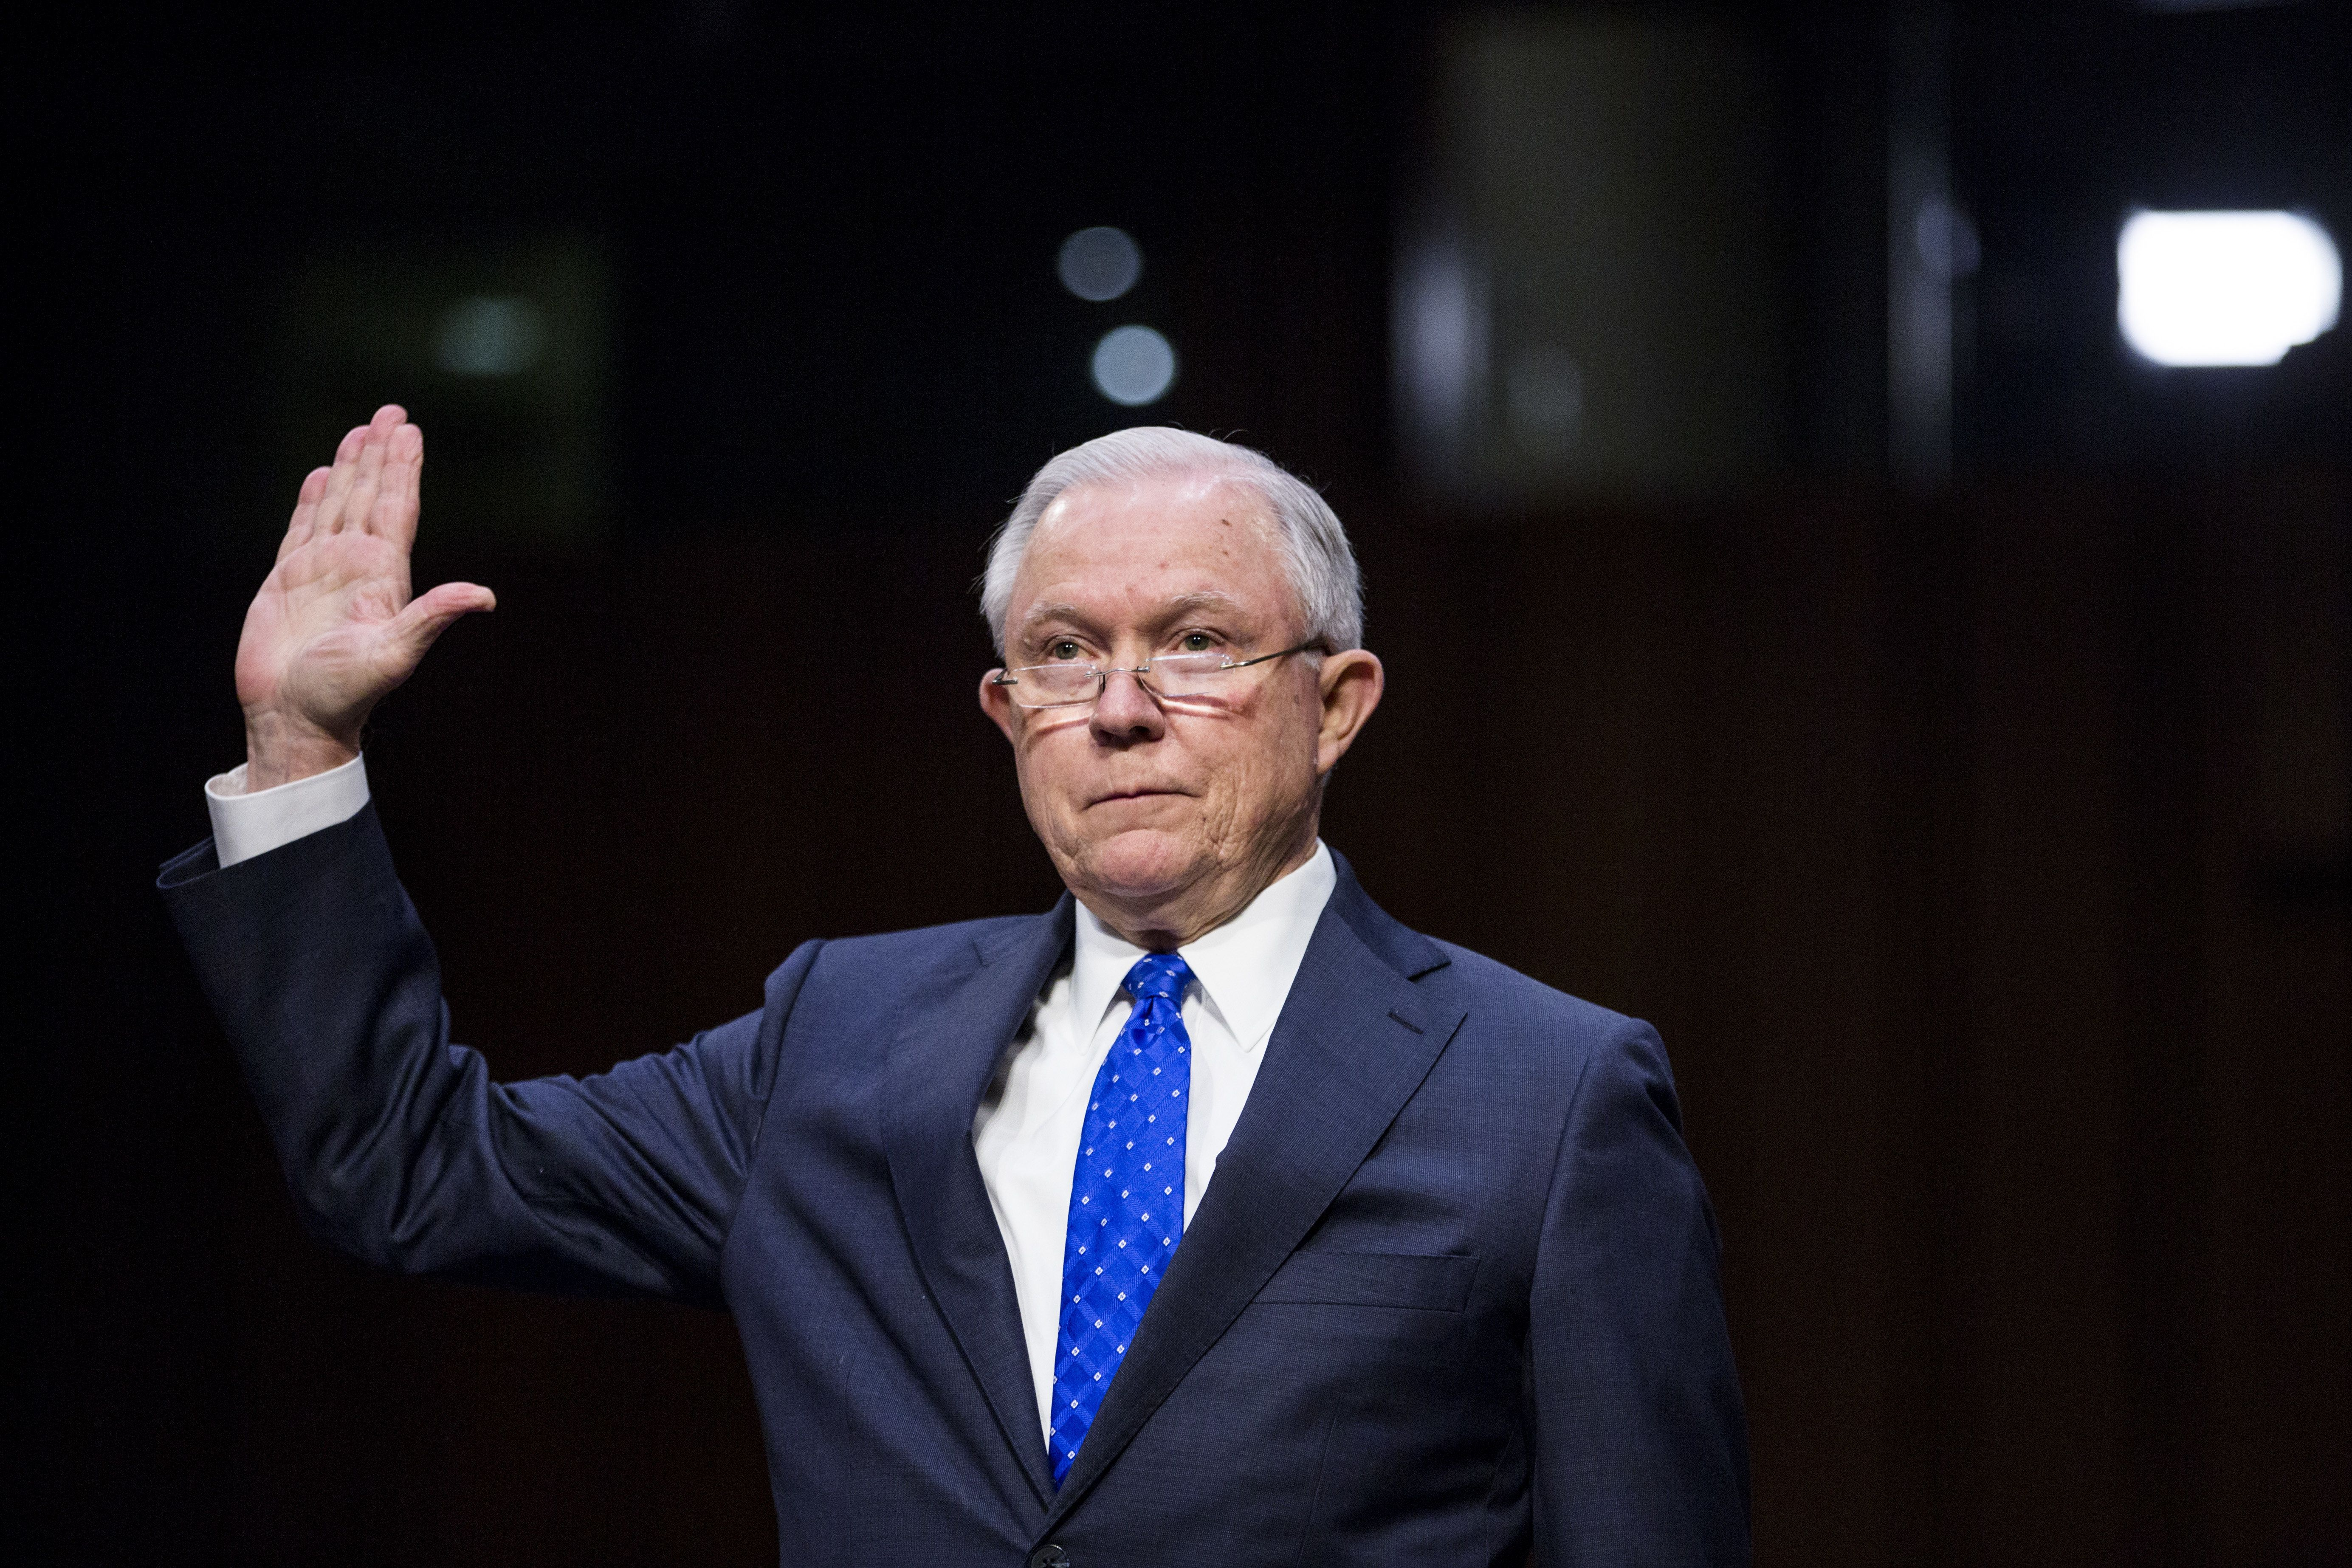 Jeff Sessions, U.S. attorney general, is sworn in to testify during a Senate Judiciary Committee hearing in Washington, D.C., U.S., on Wednesday, Oct. 18, 2017. Sessions told senators he won't answer questions about his conversations with President Donald Trump over the firing of FBI Director James Comey. Photographer: Zach Gibson/Bloomberg via Getty Images